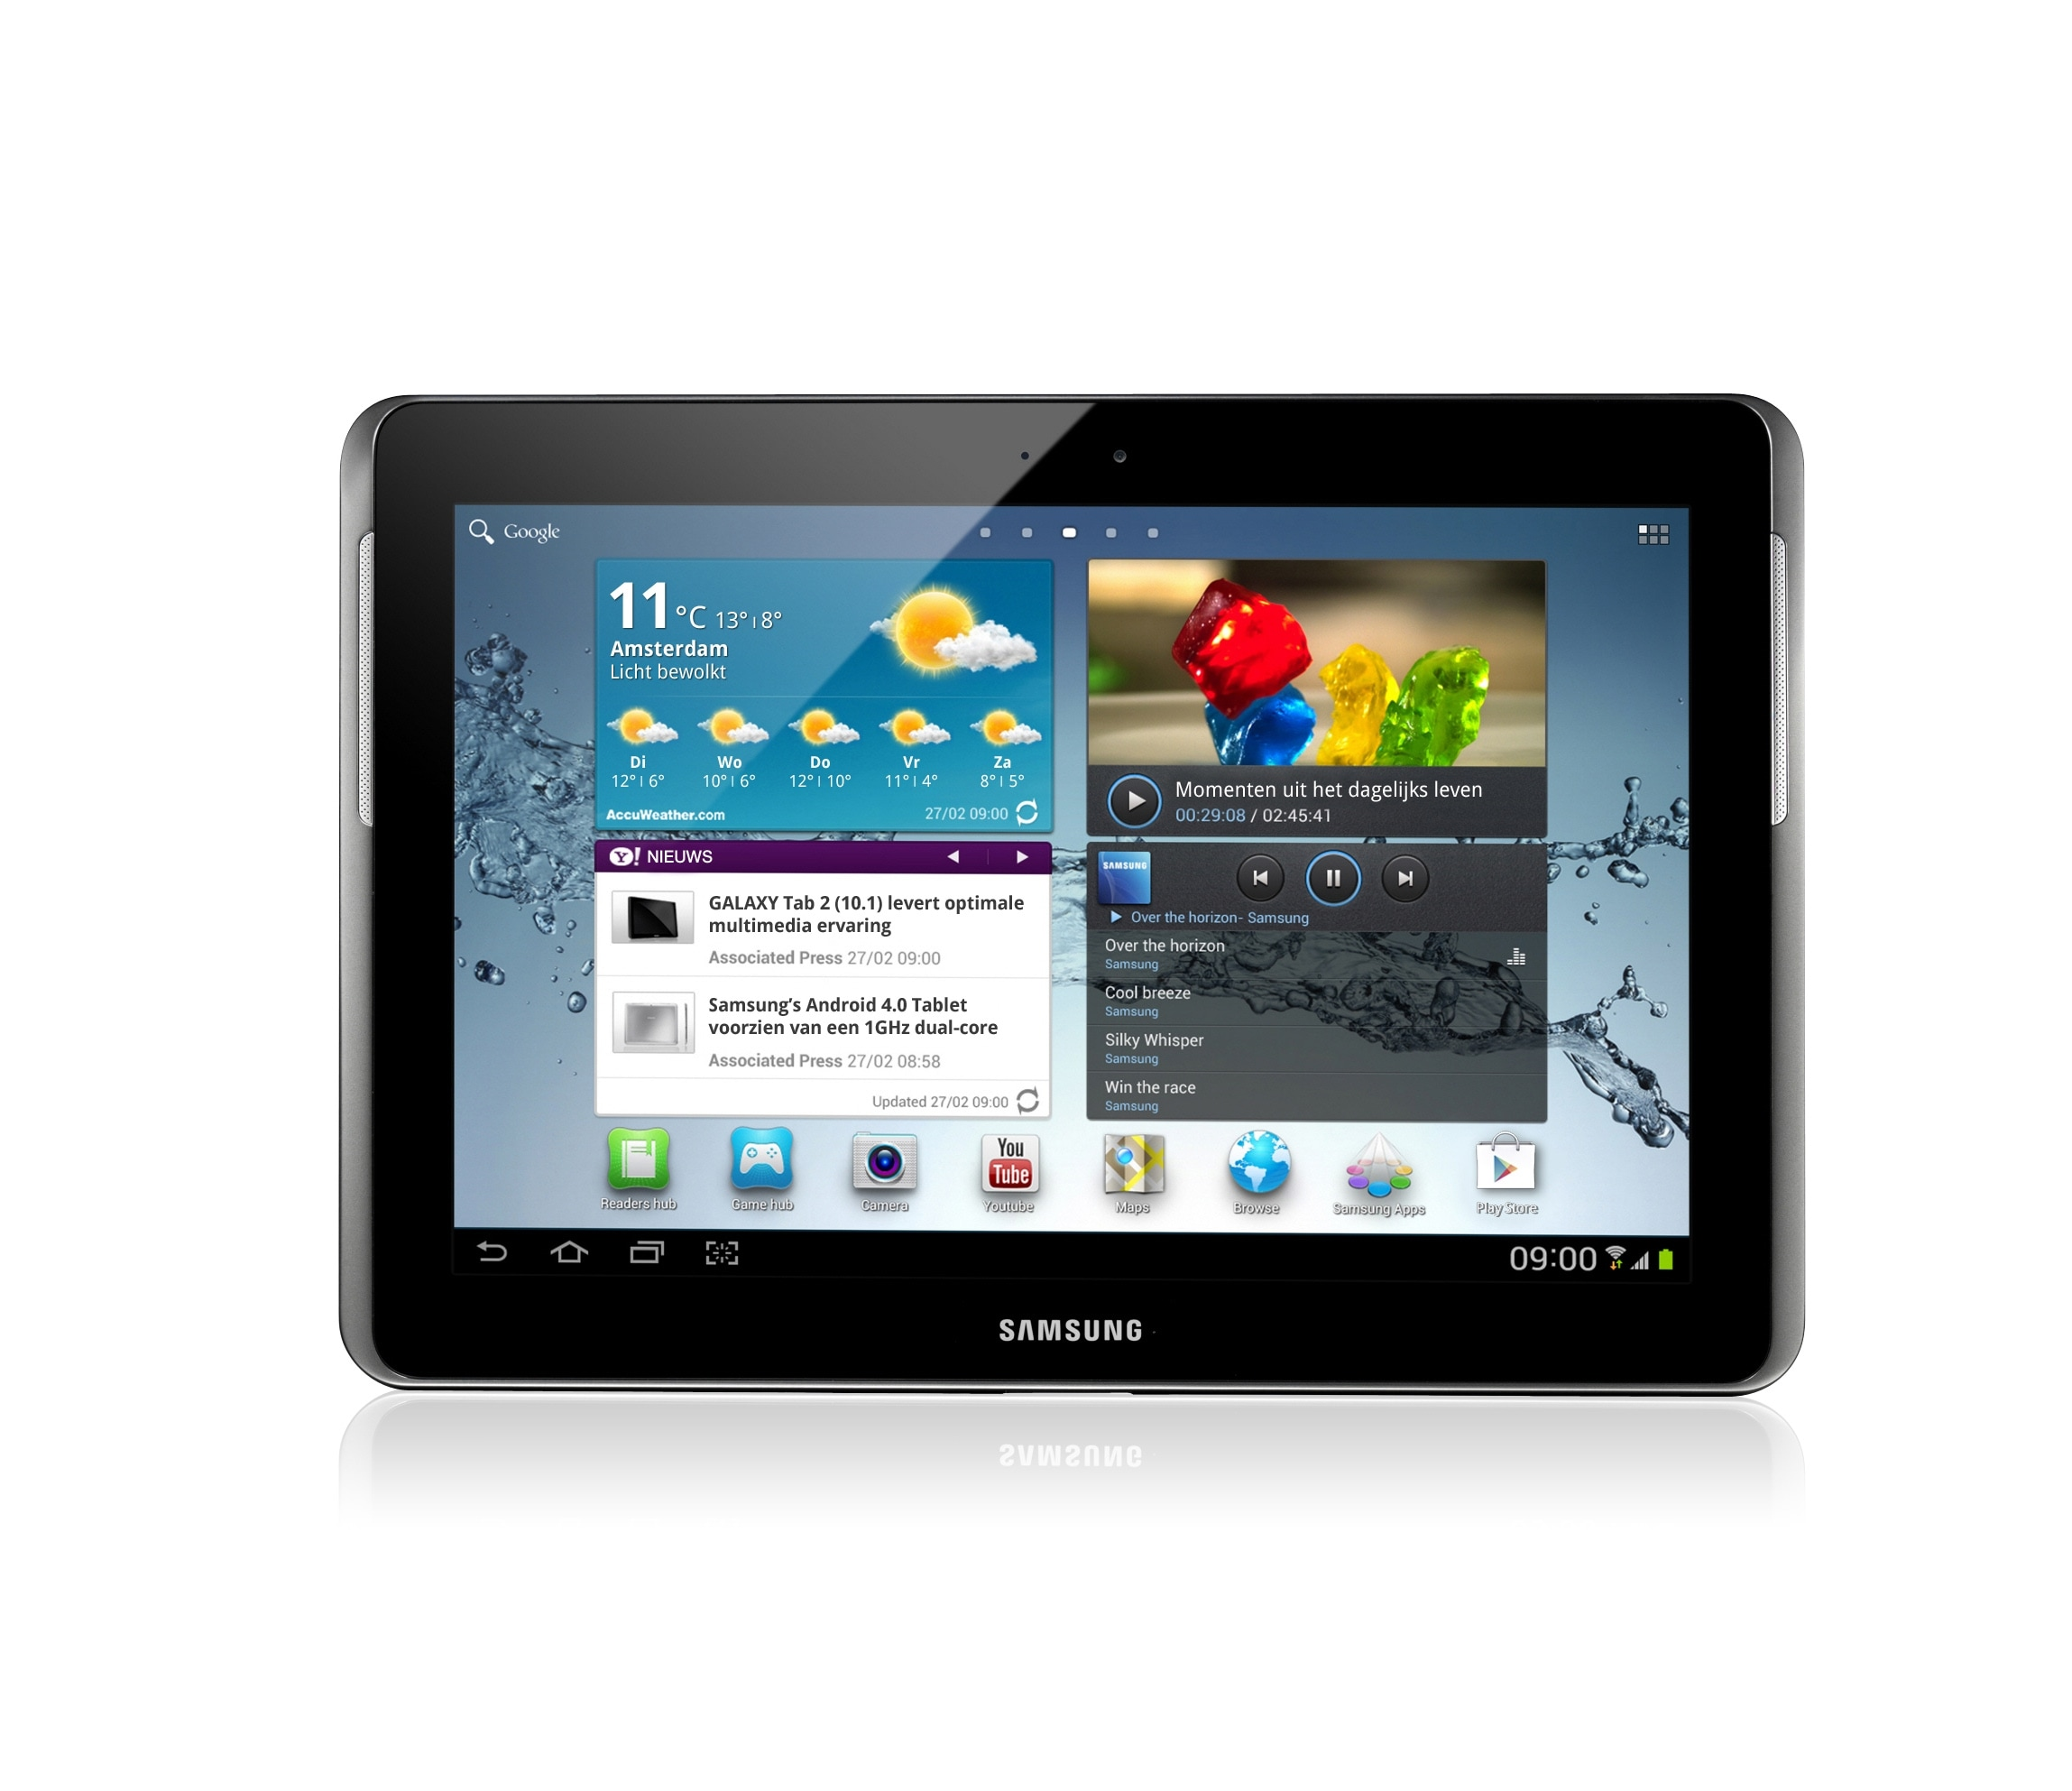 Galaxy Tab 2 10.1 3G + Wi-Fi P5100 Android